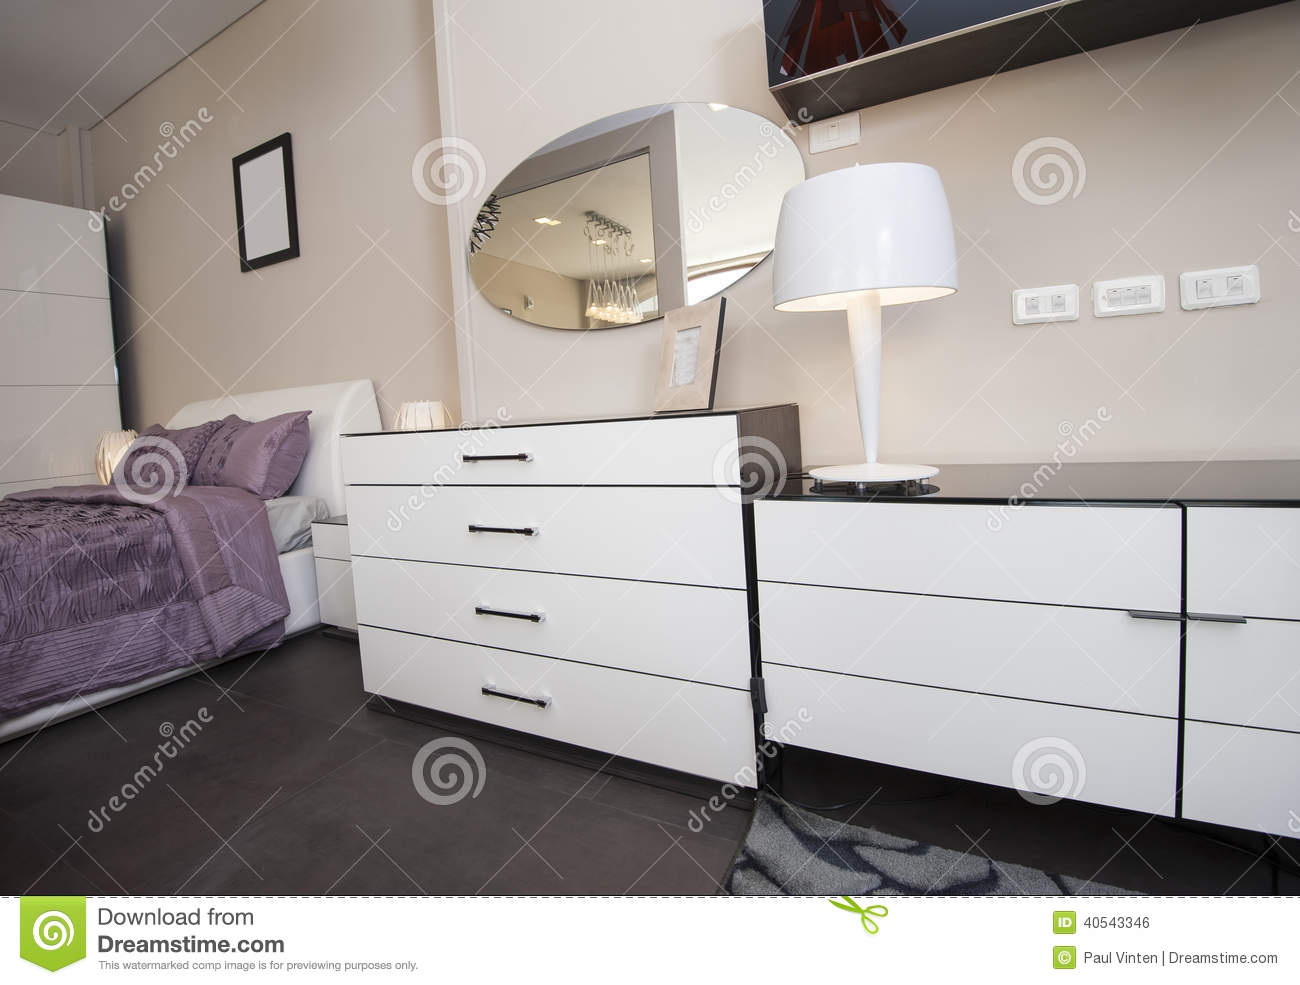 Dresser Unit In Bedroom Of Show Home Stock Photo Image 40543346